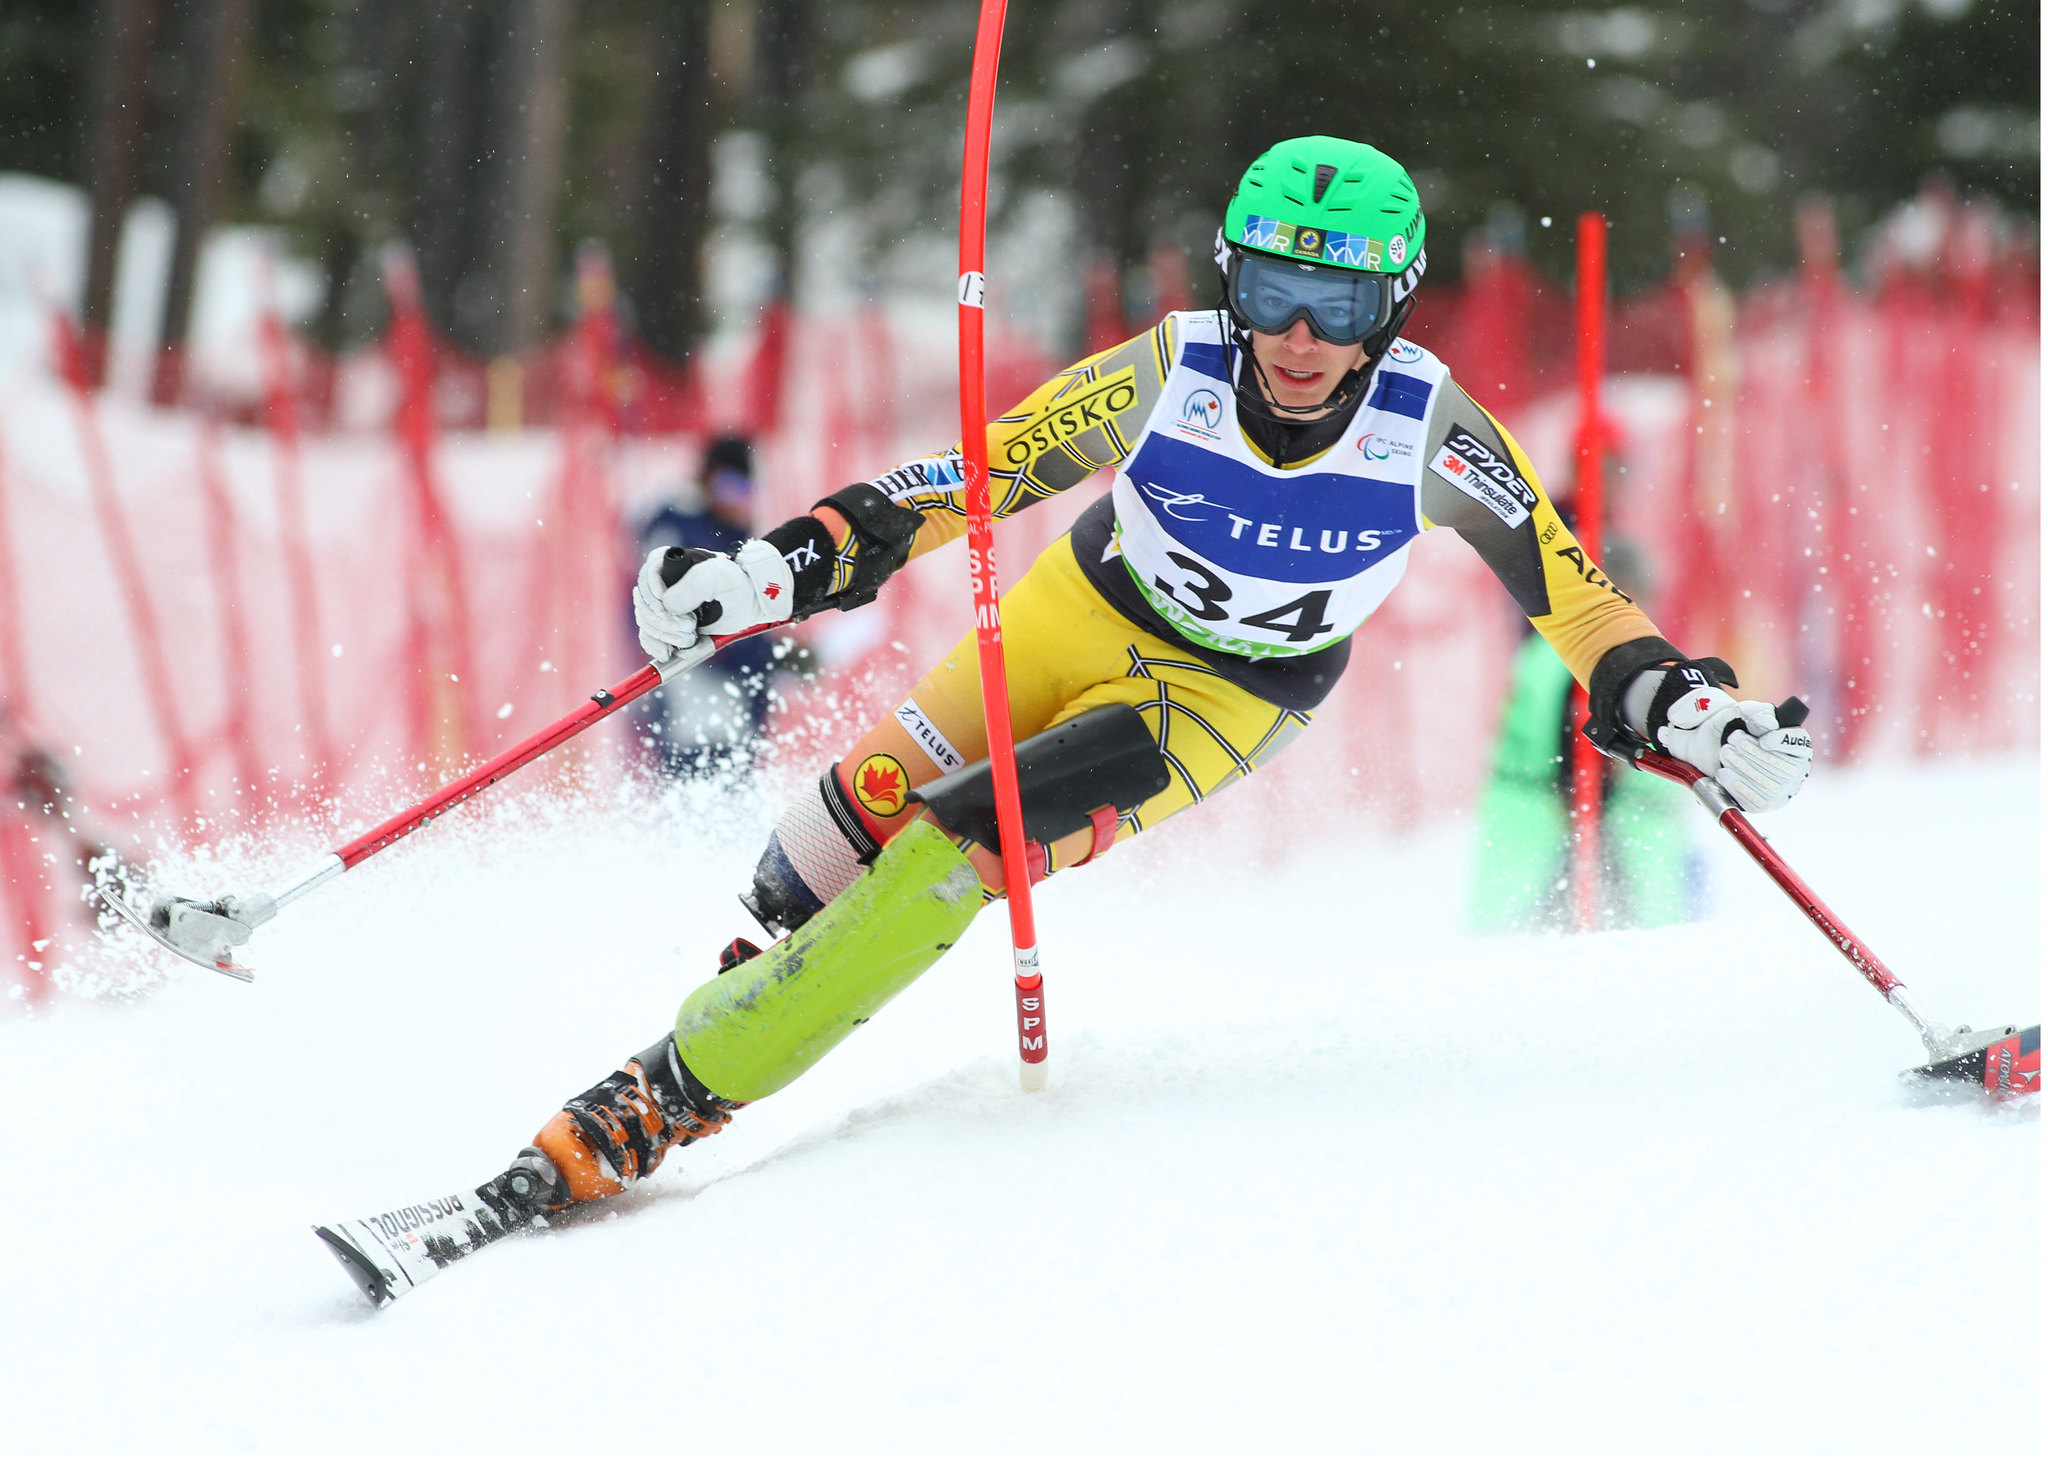 Braydon Luscombe in action in an IPC World Cup slalom in Panorama, B.C.